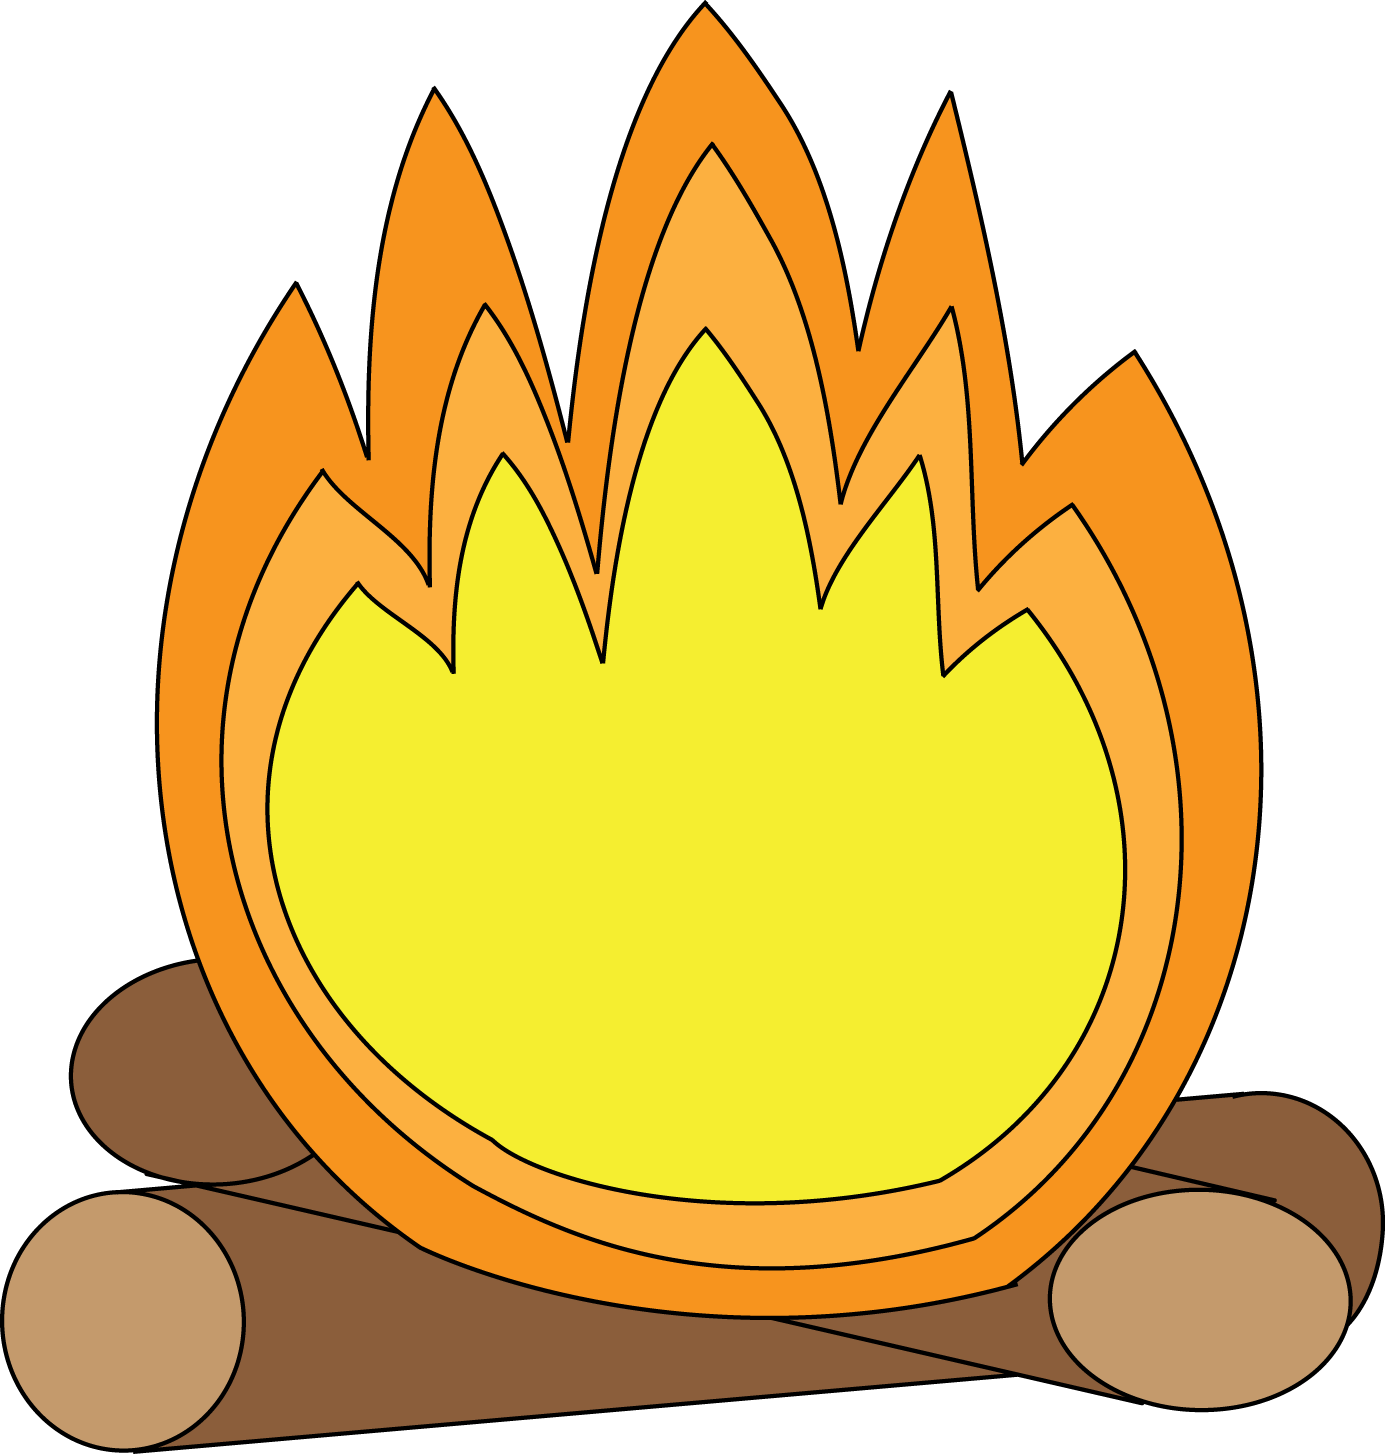 Drawn campire transparent Clipart White bonfire%20clipart Images And